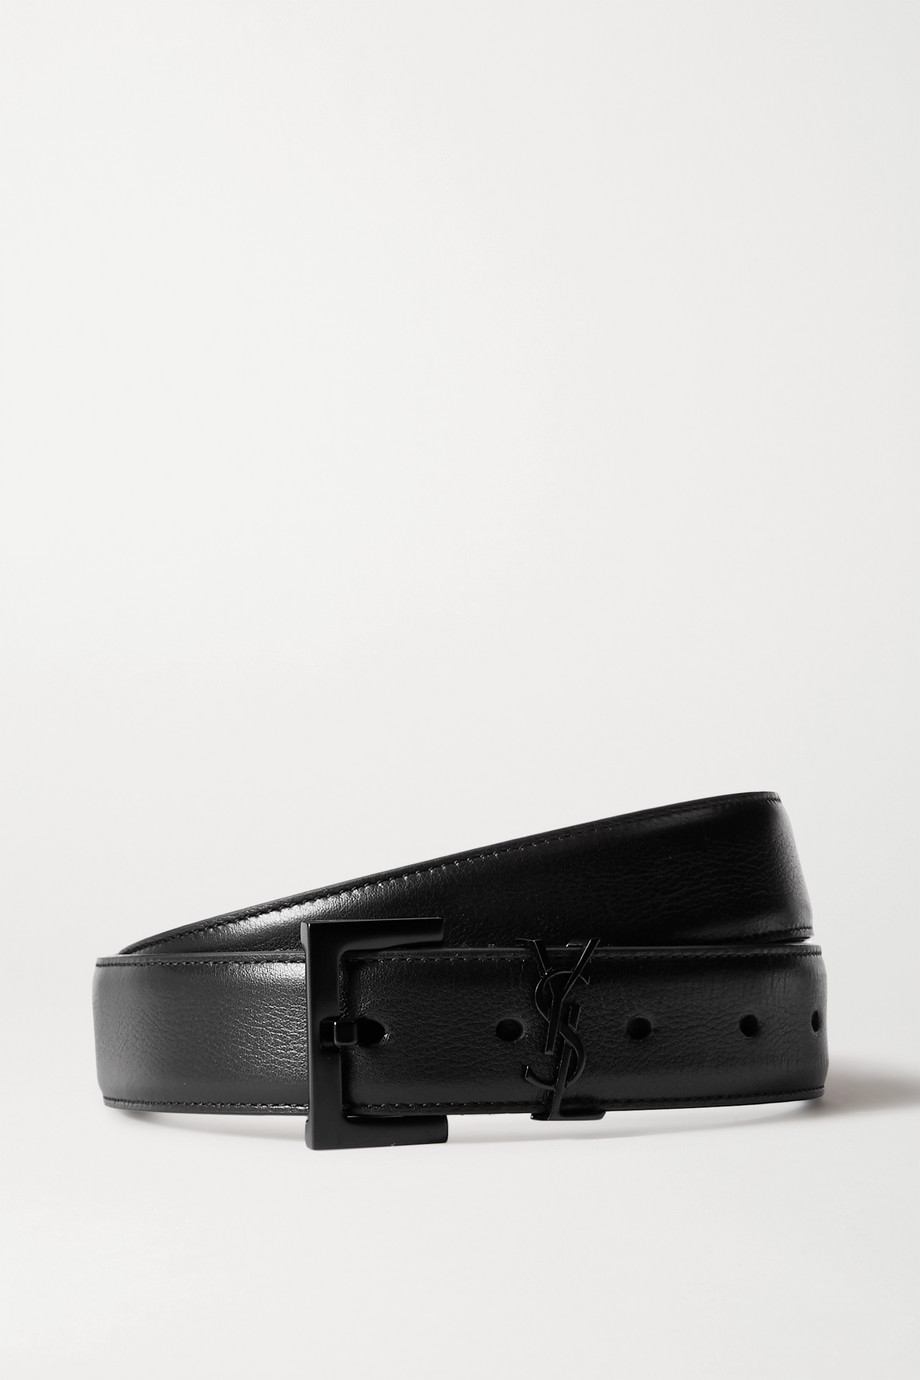 SAINT LAURENT Ceinture en cuir à ornement